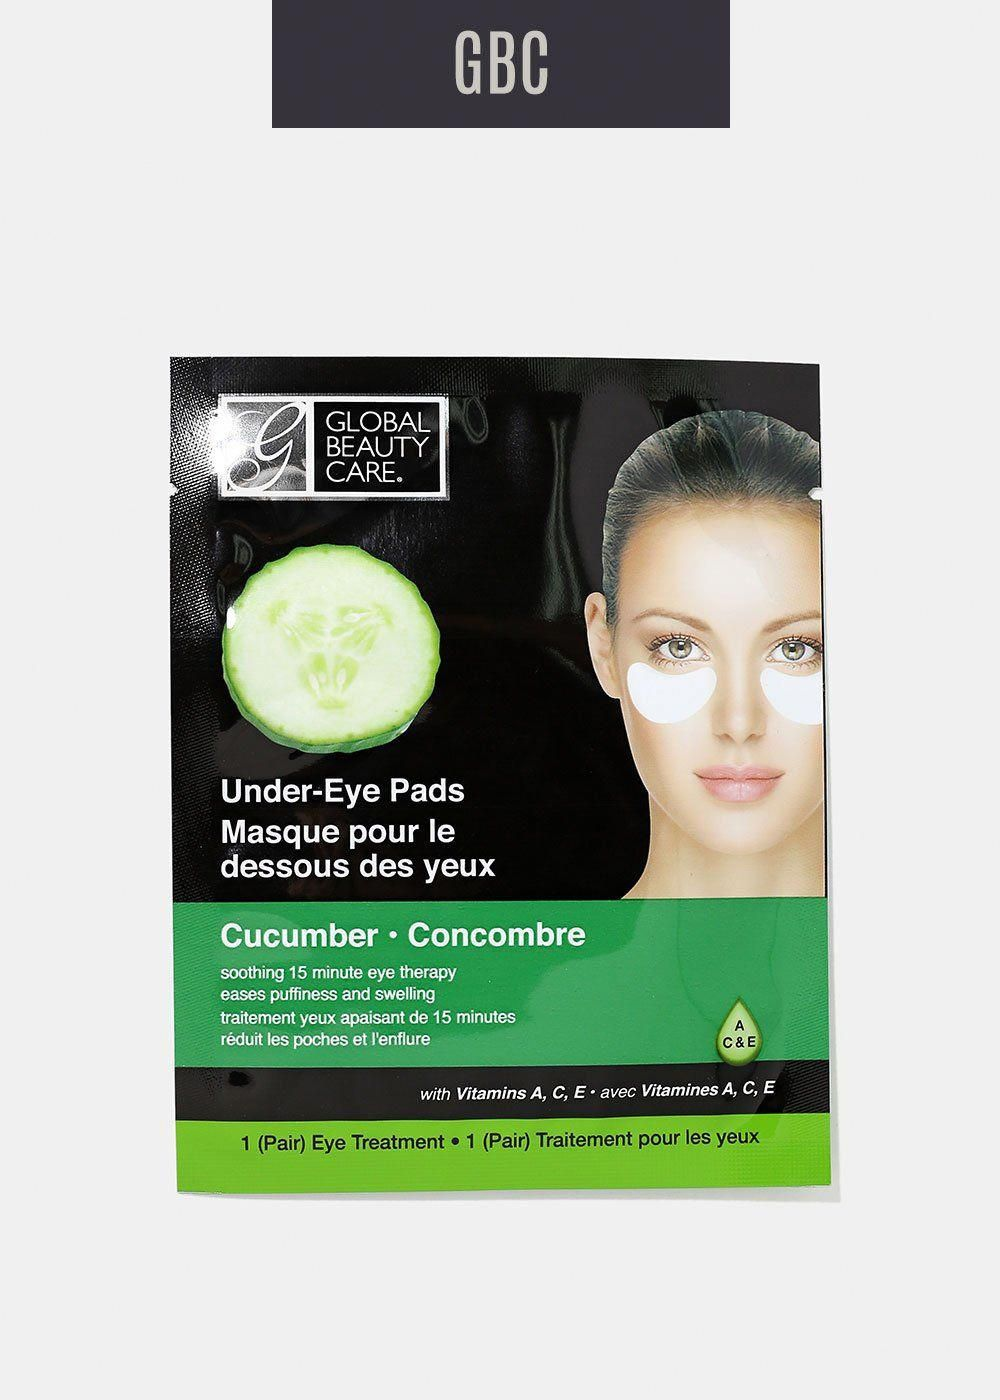 Here S 5 Interesting Tricks About Cucumber For Eyes Cucumber On Eyes Eye Care Cool Eyes